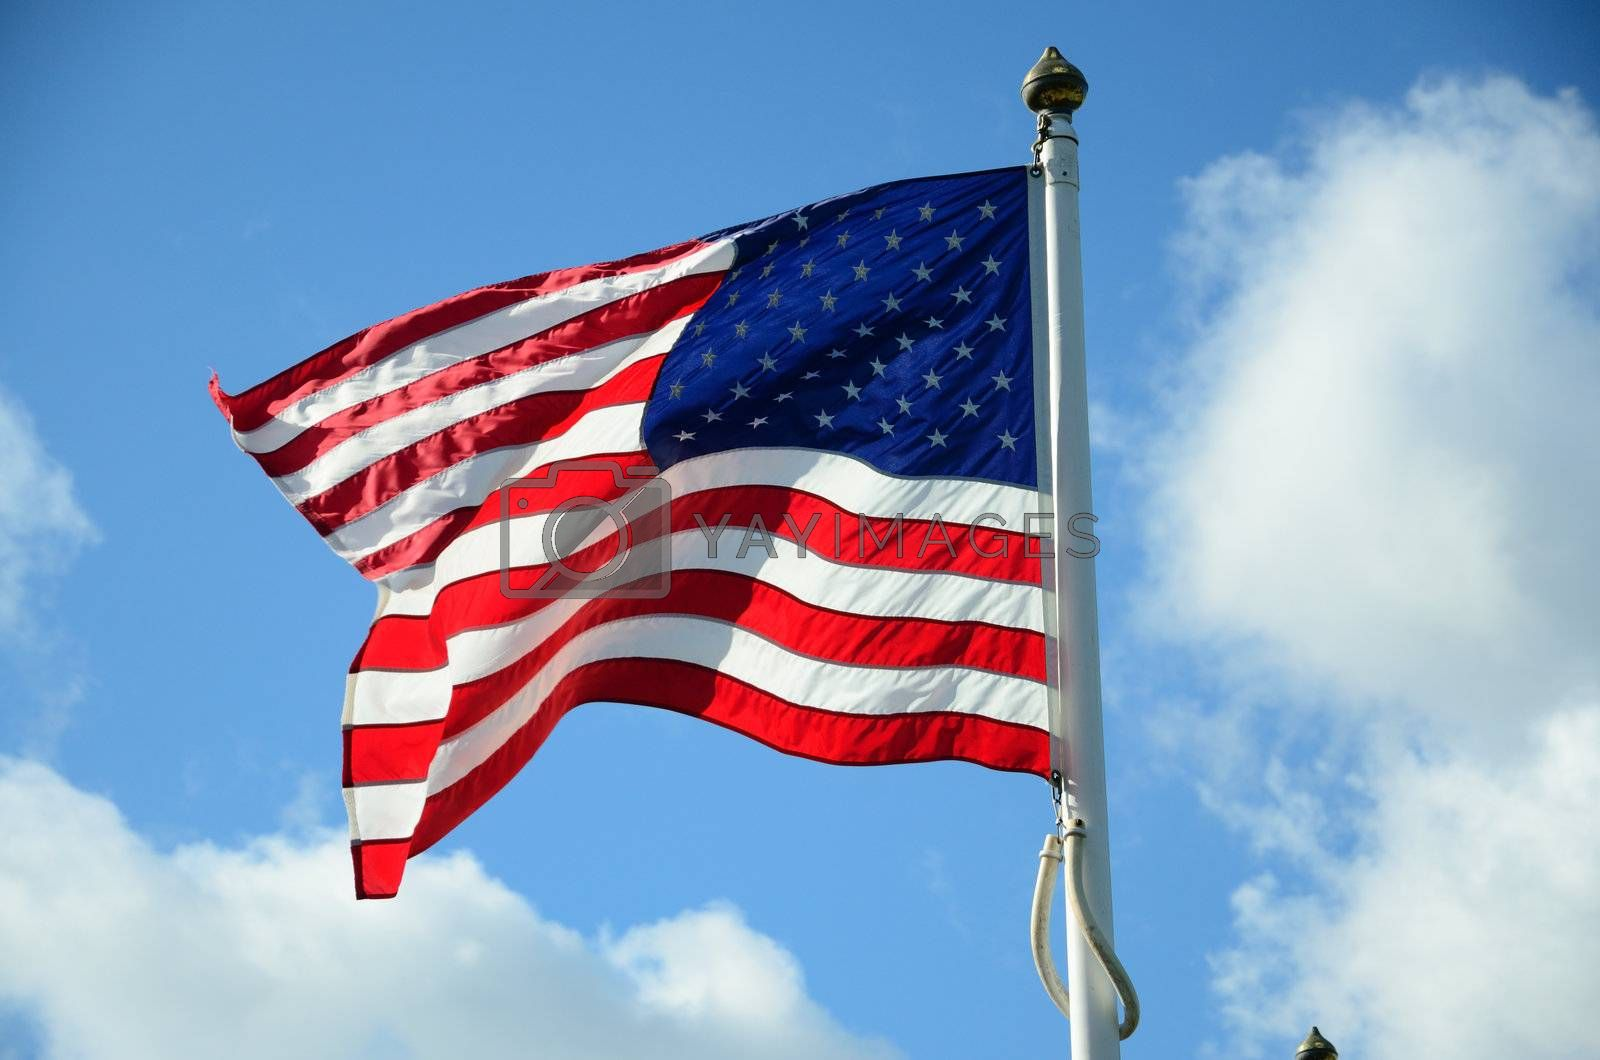 A  Image ID: 61933045   Release  information: N/A   Copyright: kropic1   Keywords: 4th, america, american, background, banner, blue, country, culture, day, democracy, democratic, flag, flying, fourth, freedom, glory, holiday, independence, july, liberty, memorial, nation, national, nationalism, old, party, patriot, patriotic, patriotism, pole, pride, red, shape, single, sky, spangled, star, states, stripes, symbol, symbolic, united, us, usa, wave, white, wind Similar Images Preview   american flag flapping with...   american flag blows in the wind ...   waving american flag against a...   american flag. image of...   american flag on blue sky...   fireworks against the backdrop...   american flag blowing in wind   american flag against blue sky. ...